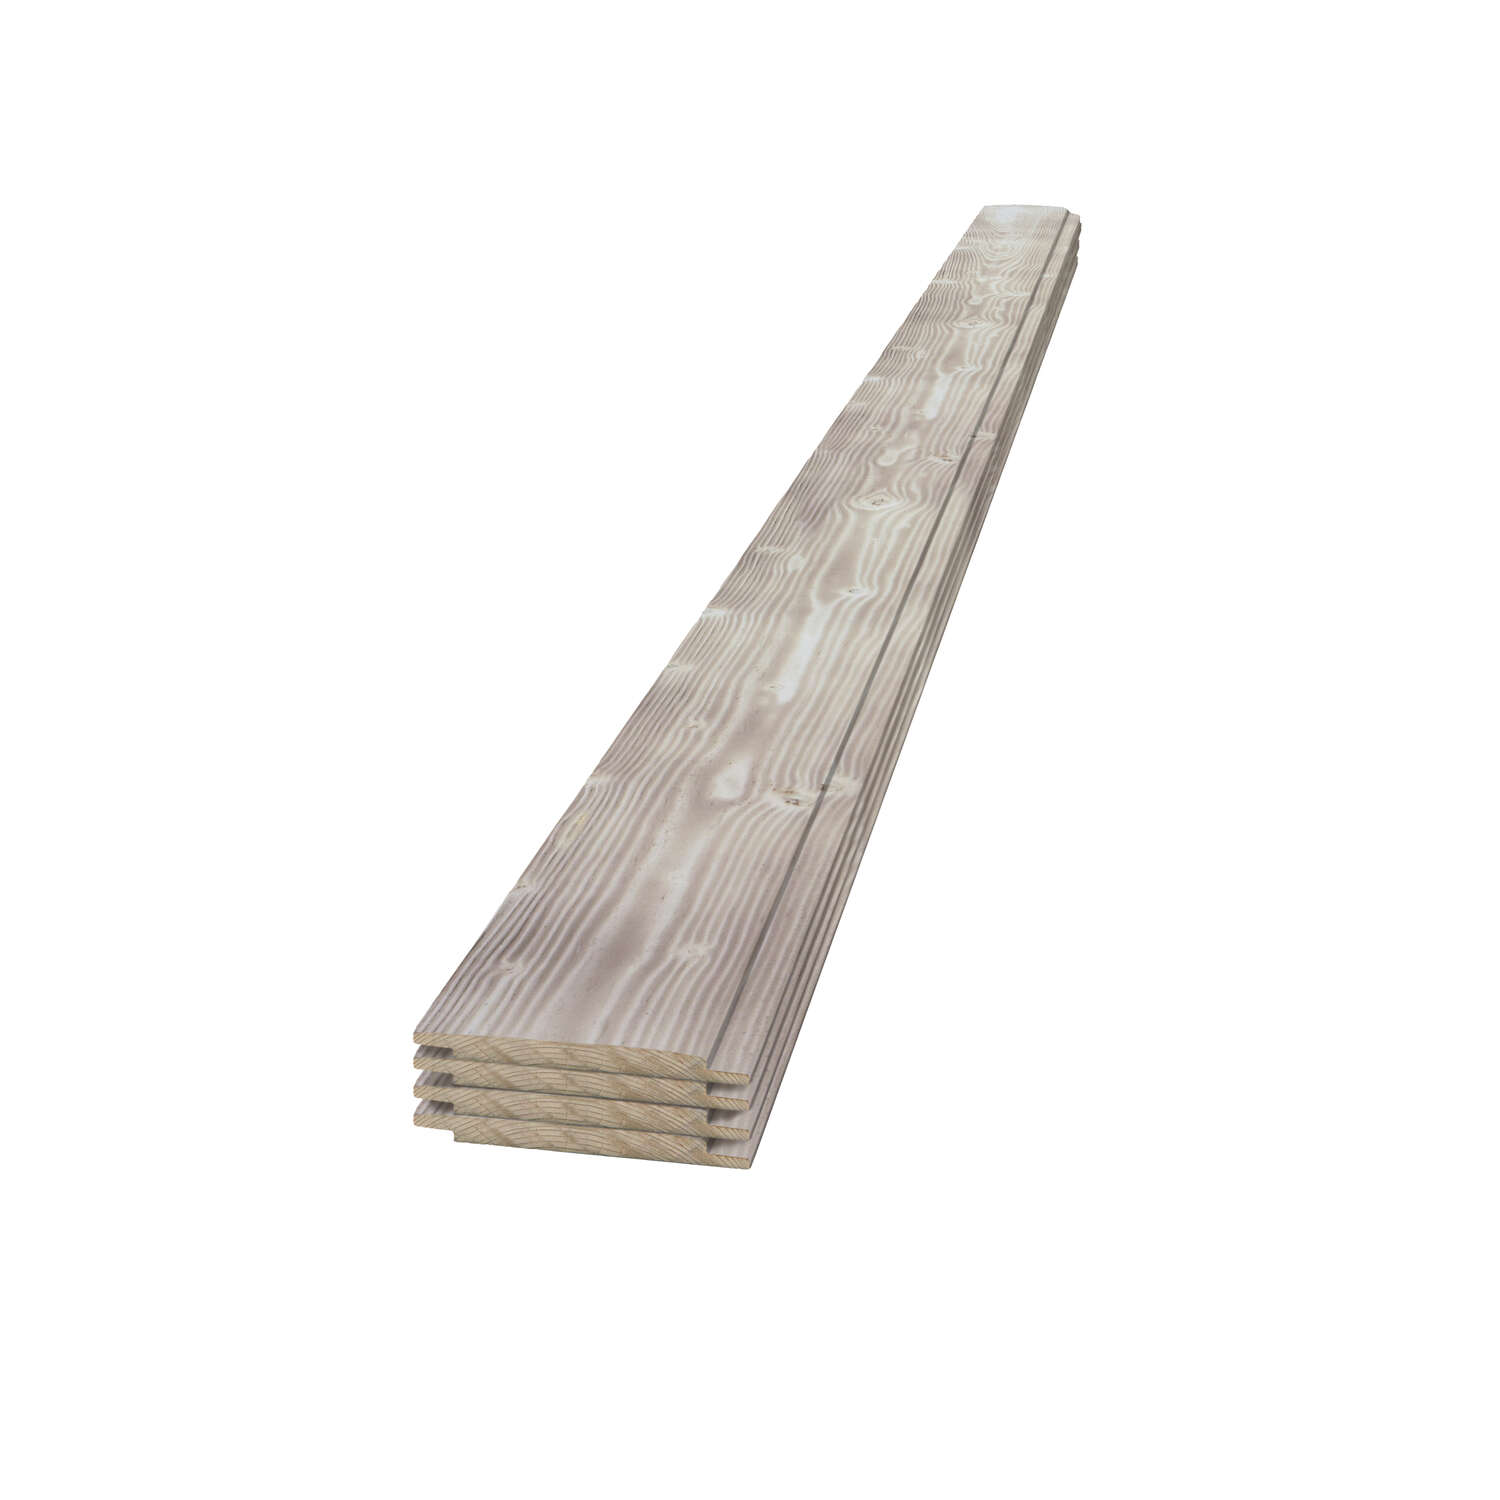 UFP-Edge  4 in. H x 6 in. W x 96 in. L Charred Smoke  Wood  Shiplap